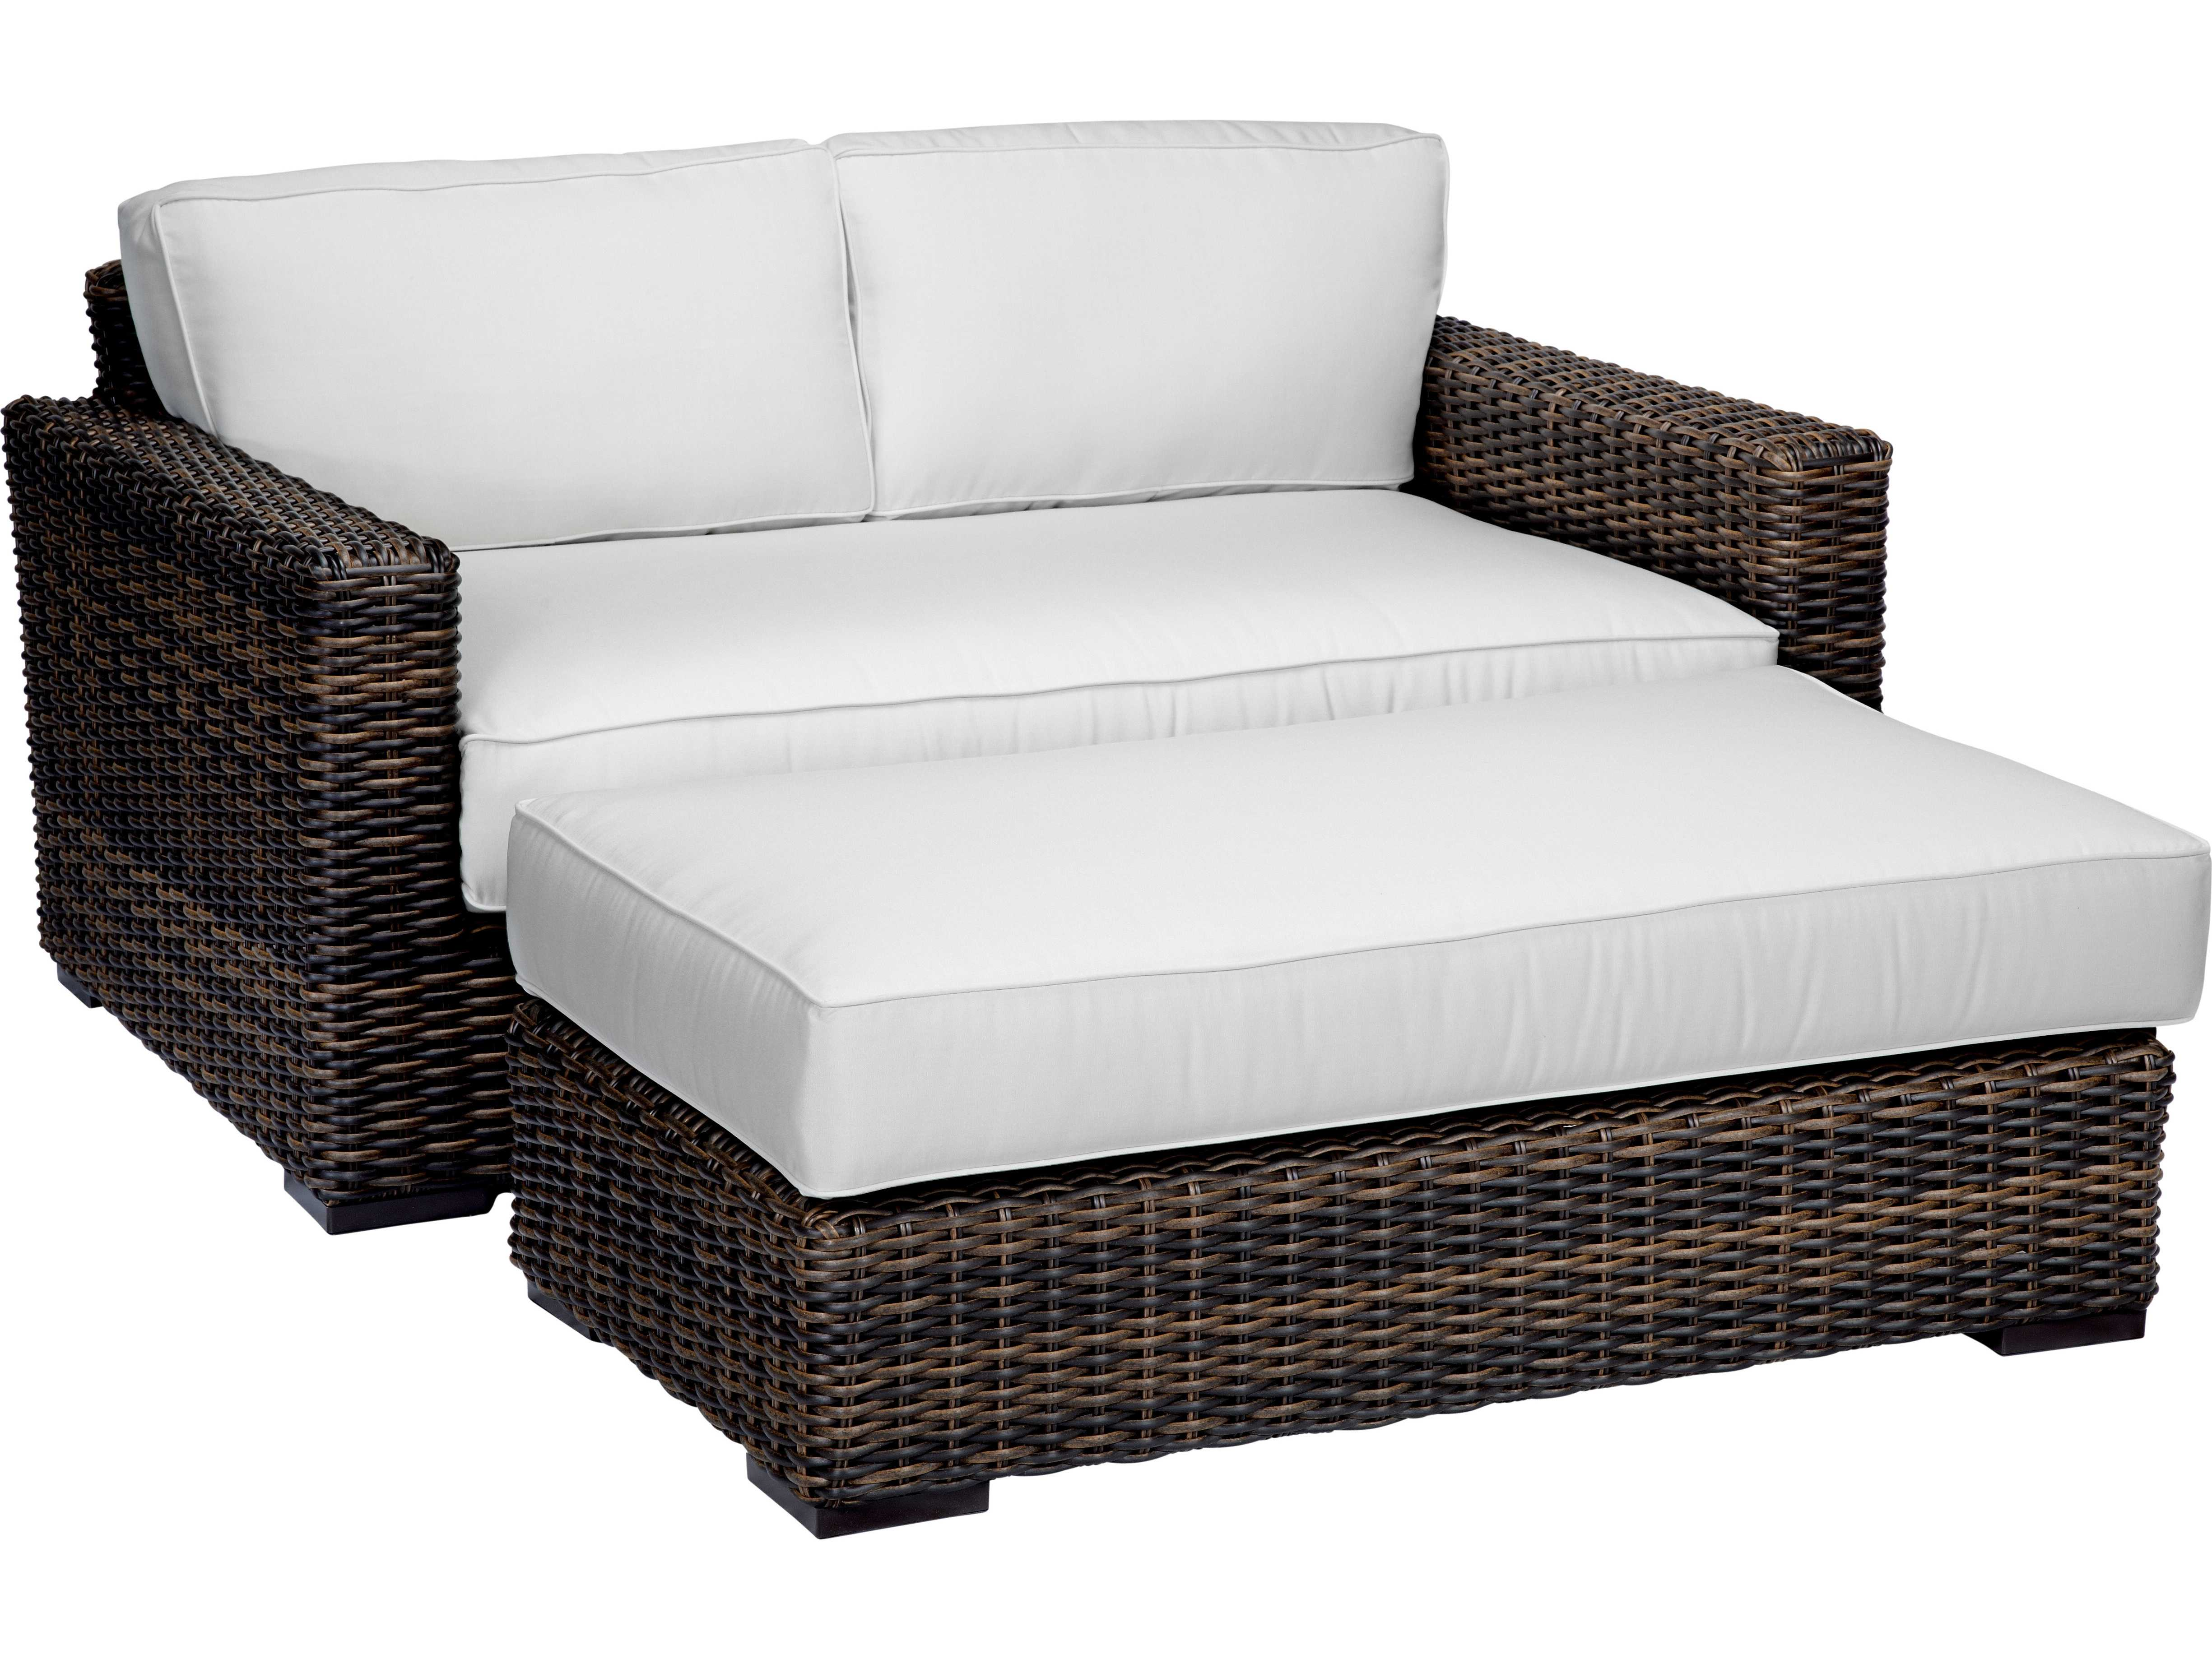 sunset west quick ship montecito wicker double chaise lounge sw250199. Black Bedroom Furniture Sets. Home Design Ideas